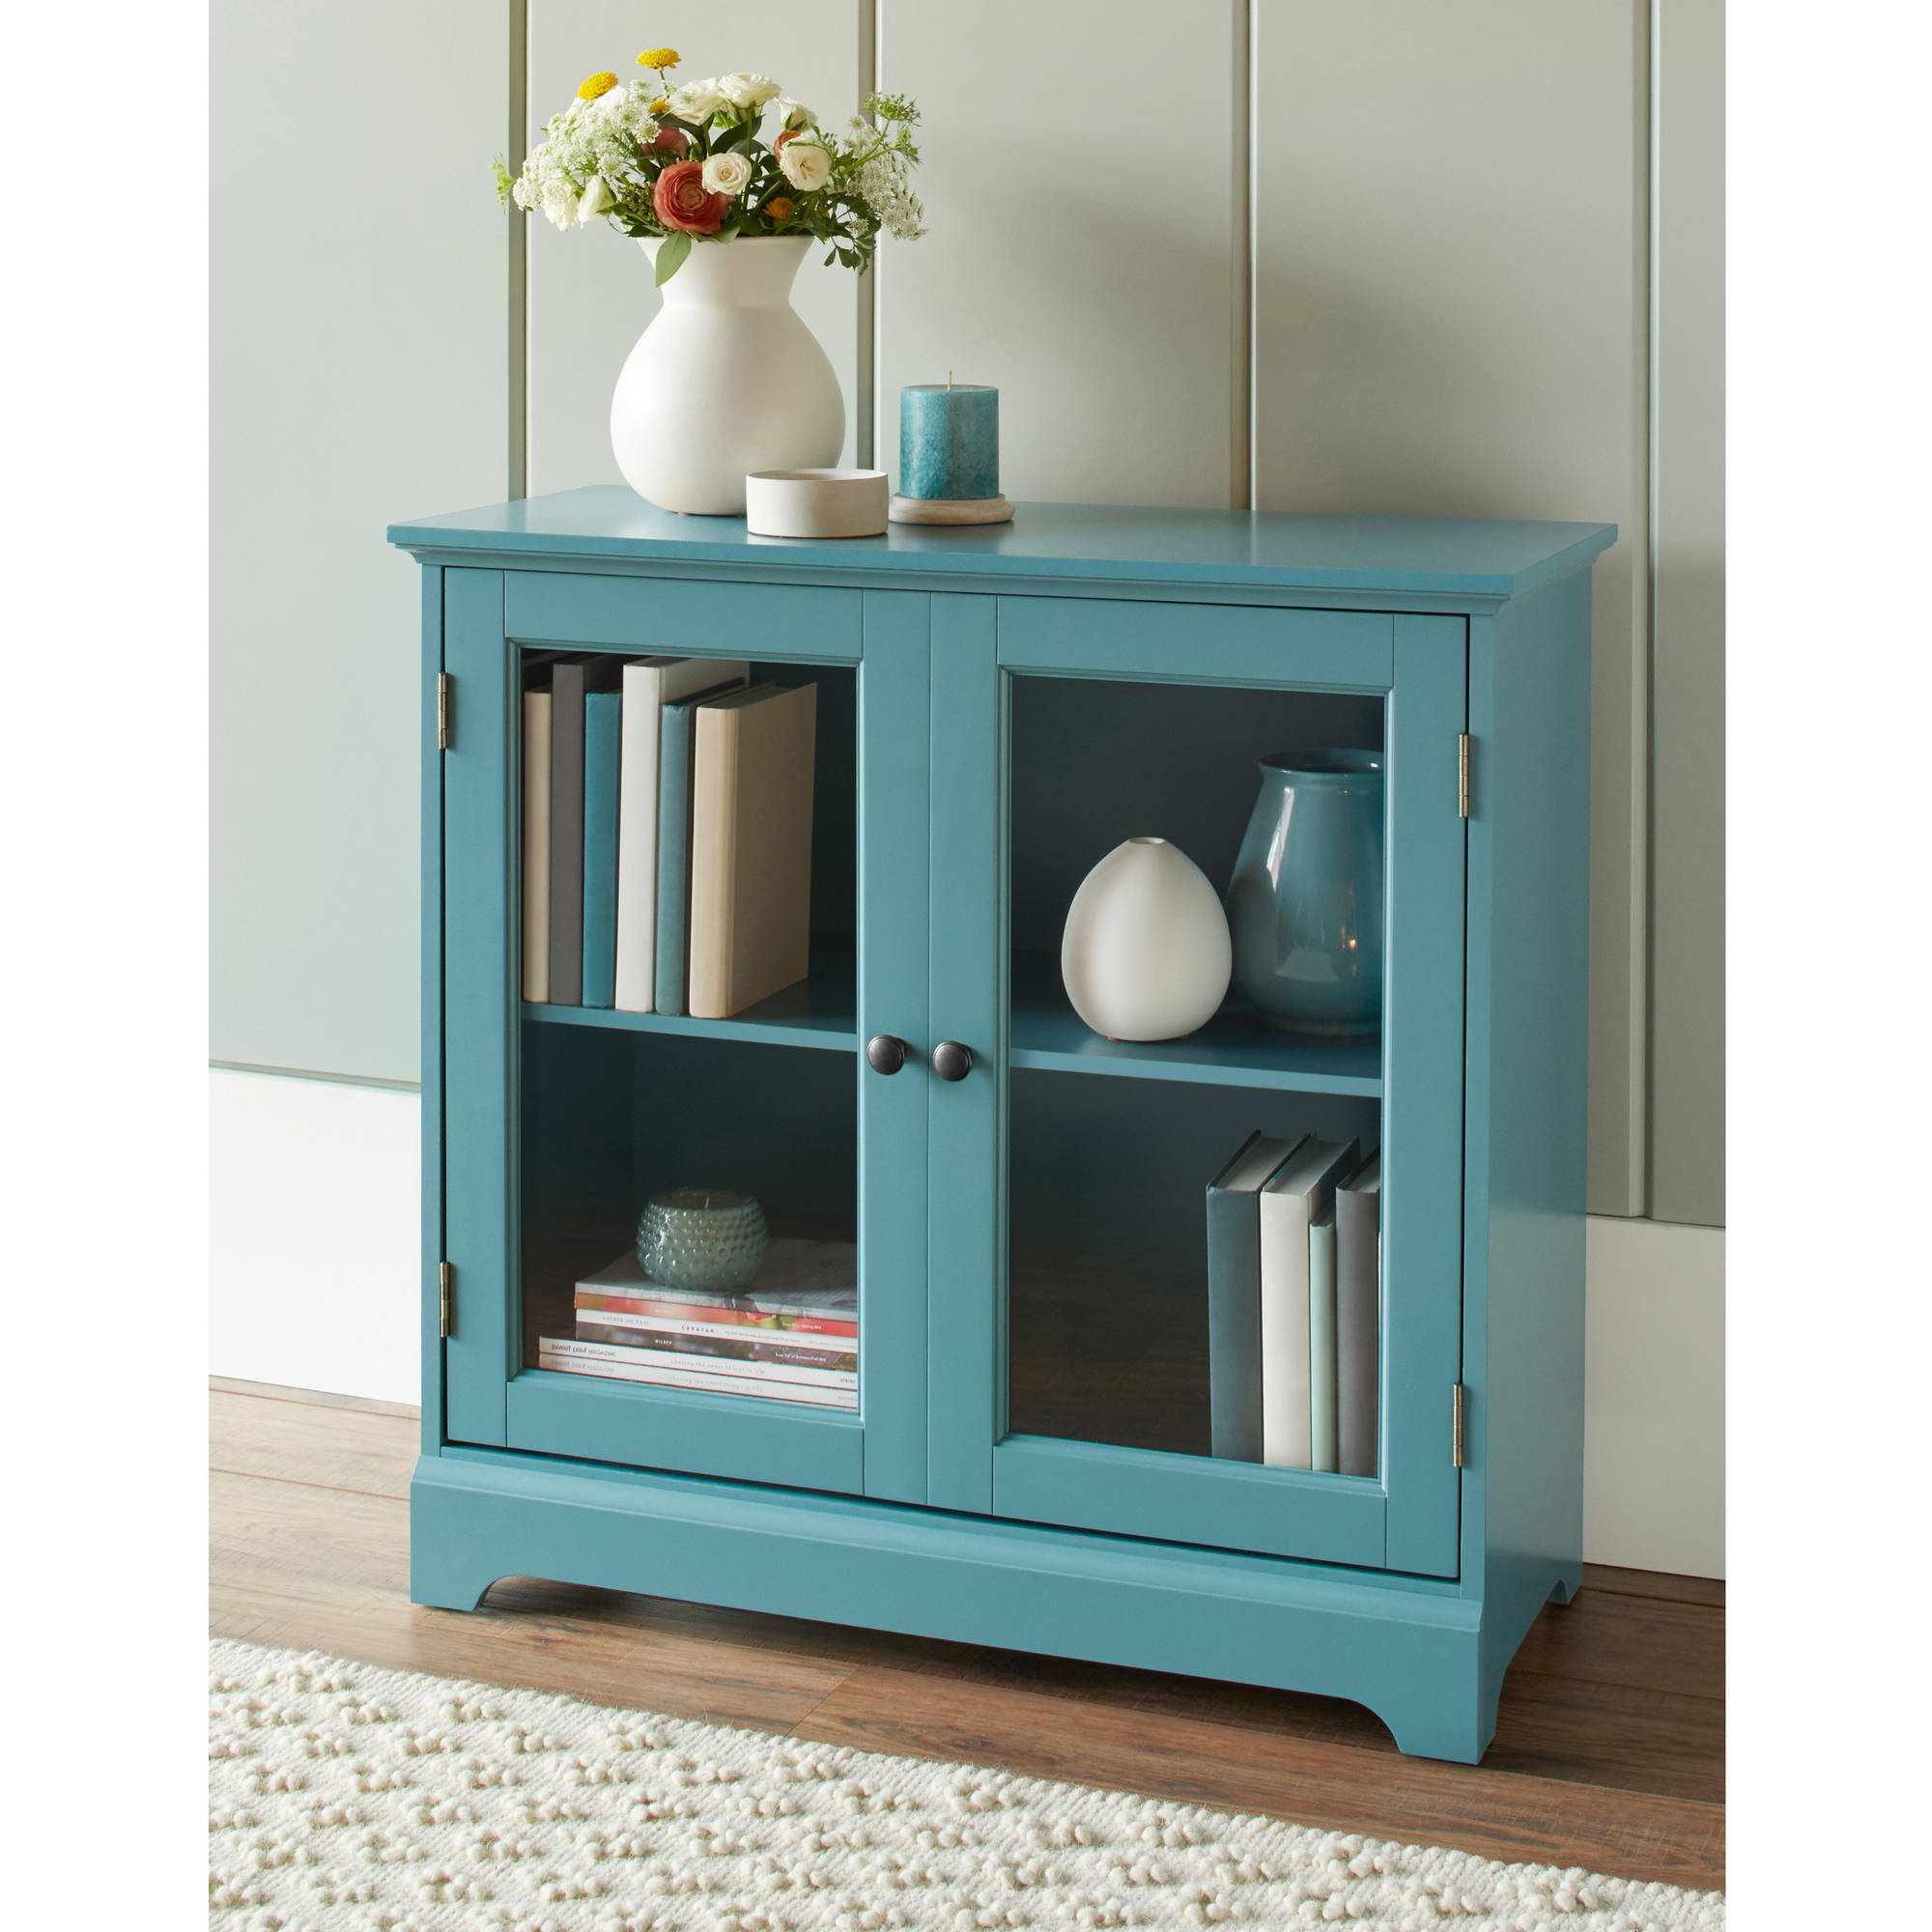 cabinetry meaning colored office apush cabinet definition government appointments curiosities escape punjabi press blue tamil jobs civics room accent urdu teal marathi coaster